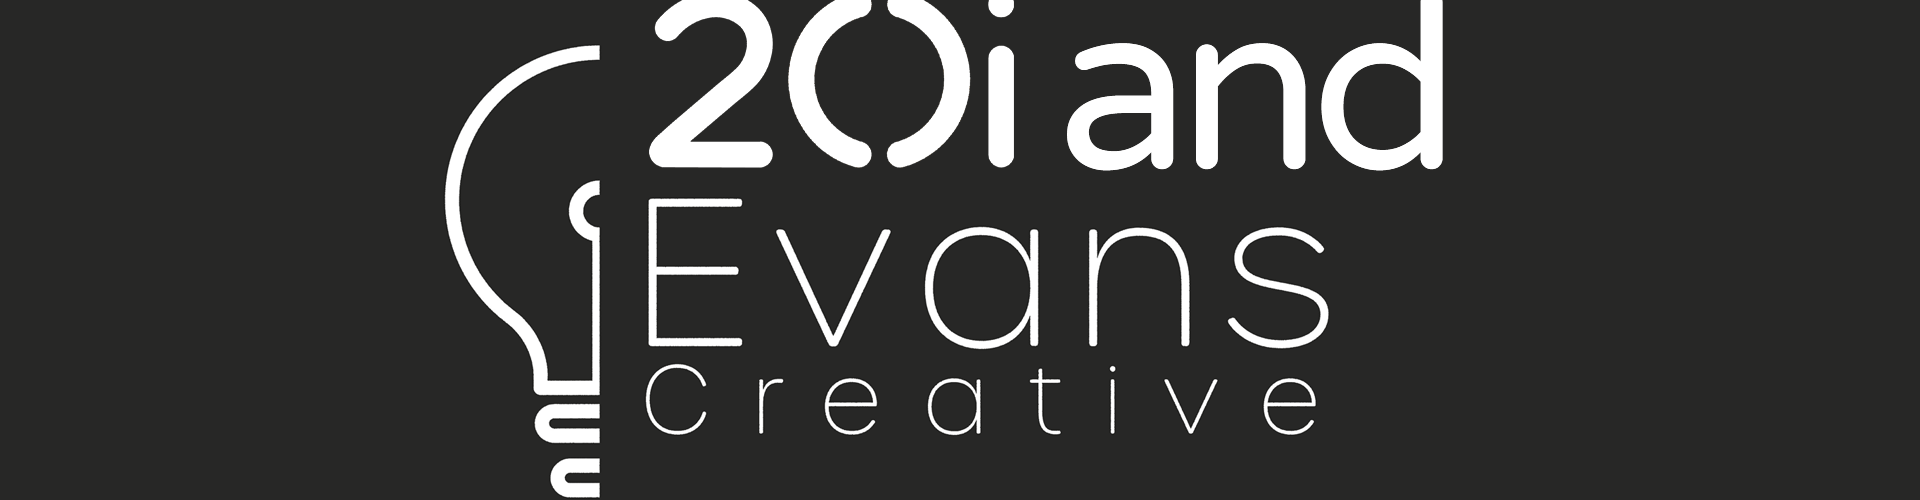 20i and Evans Creative logos